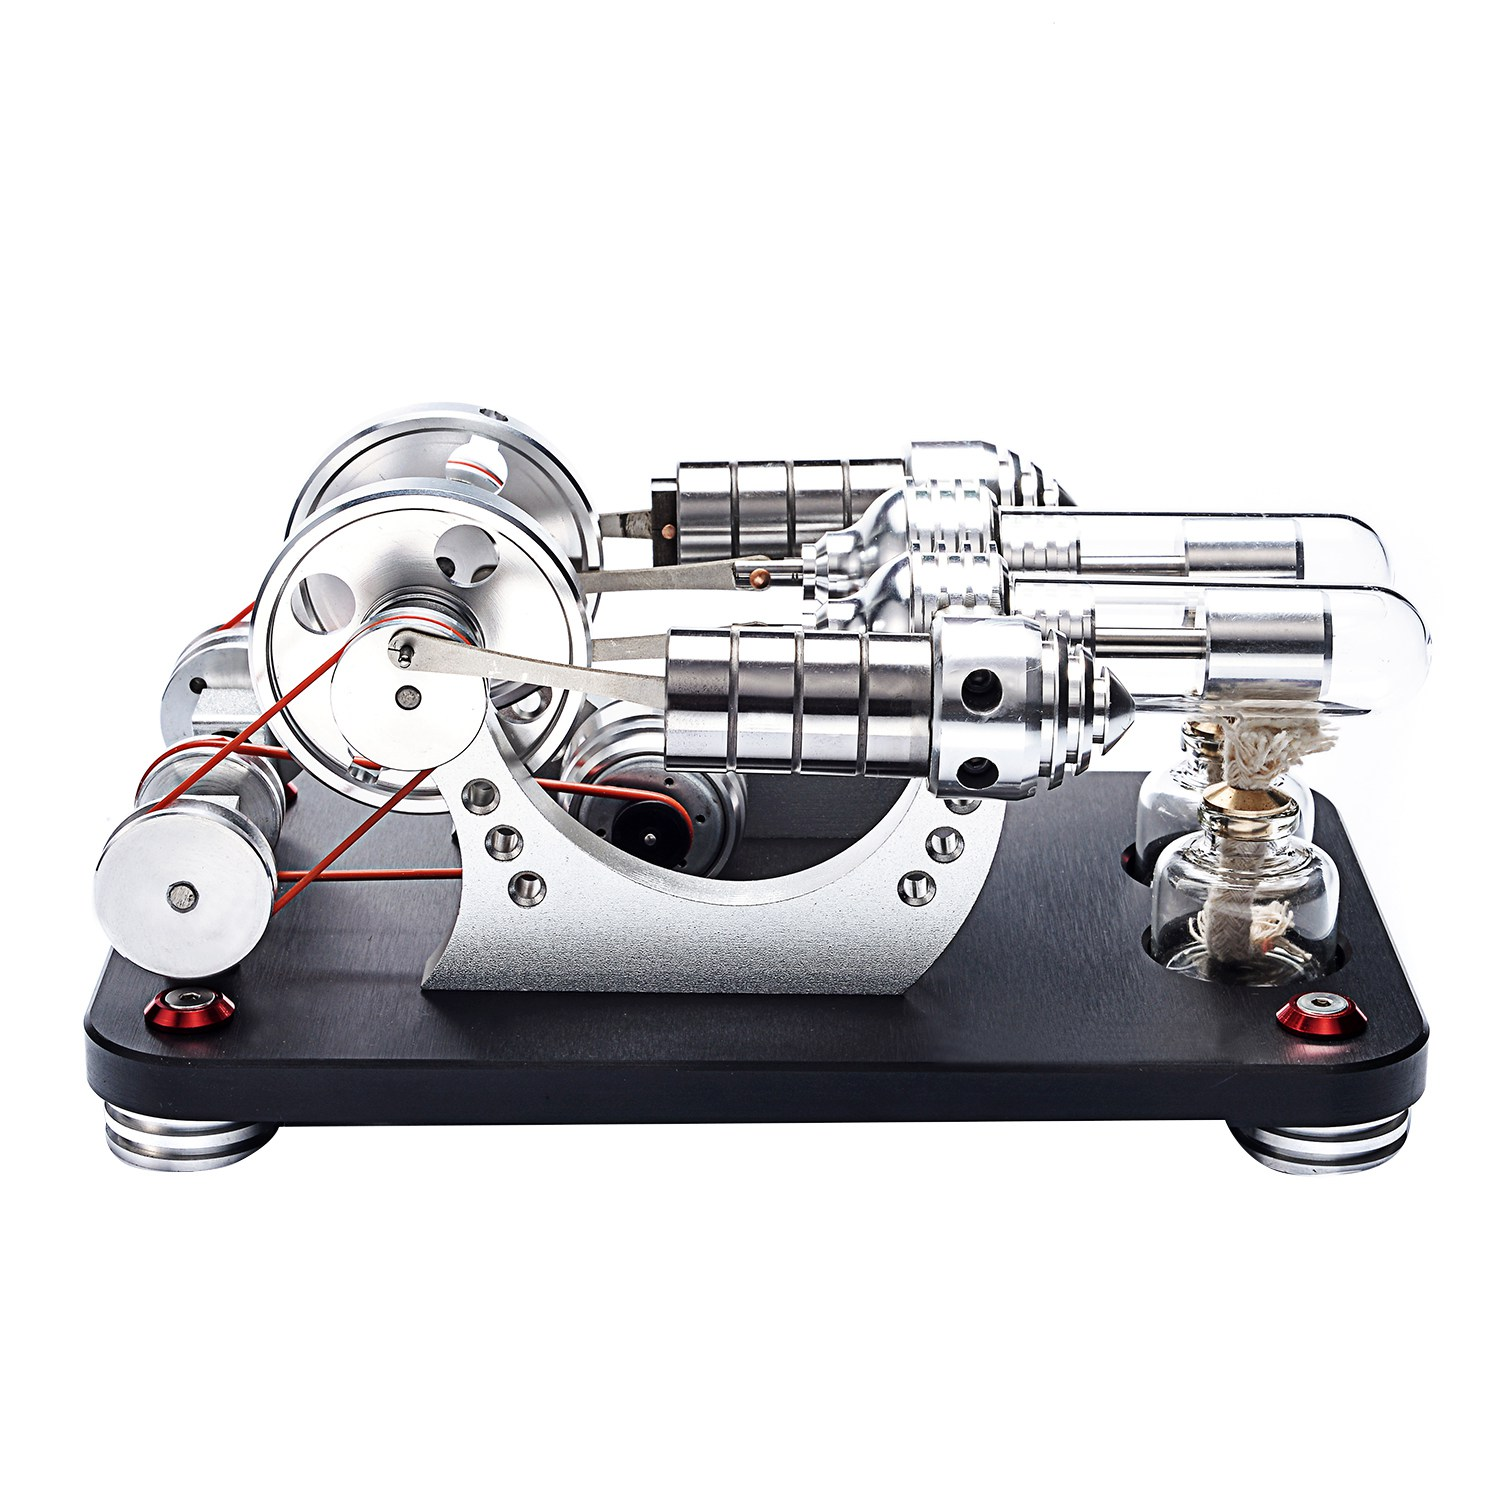 Metal 2-Cylinder Double Parallel Bootable Hot Air Stirling Engine Model Micro-External Combustion Engine ModelMetal 2-Cylinder Double Parallel Bootable Hot Air Stirling Engine Model Micro-External Combustion Engine Model